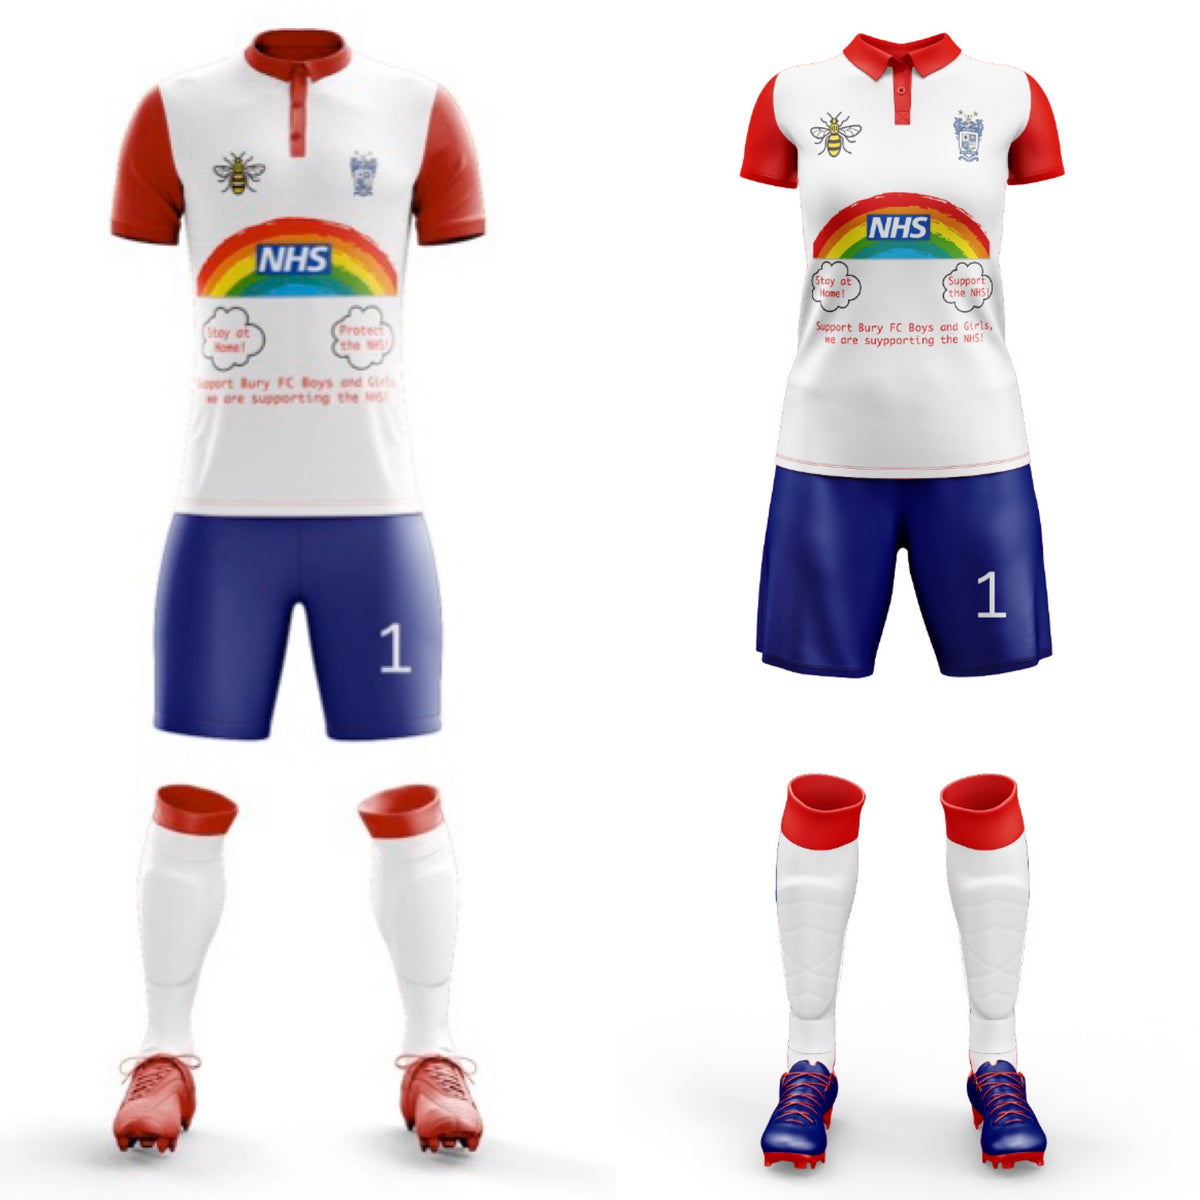 Men's and Women's Football kits